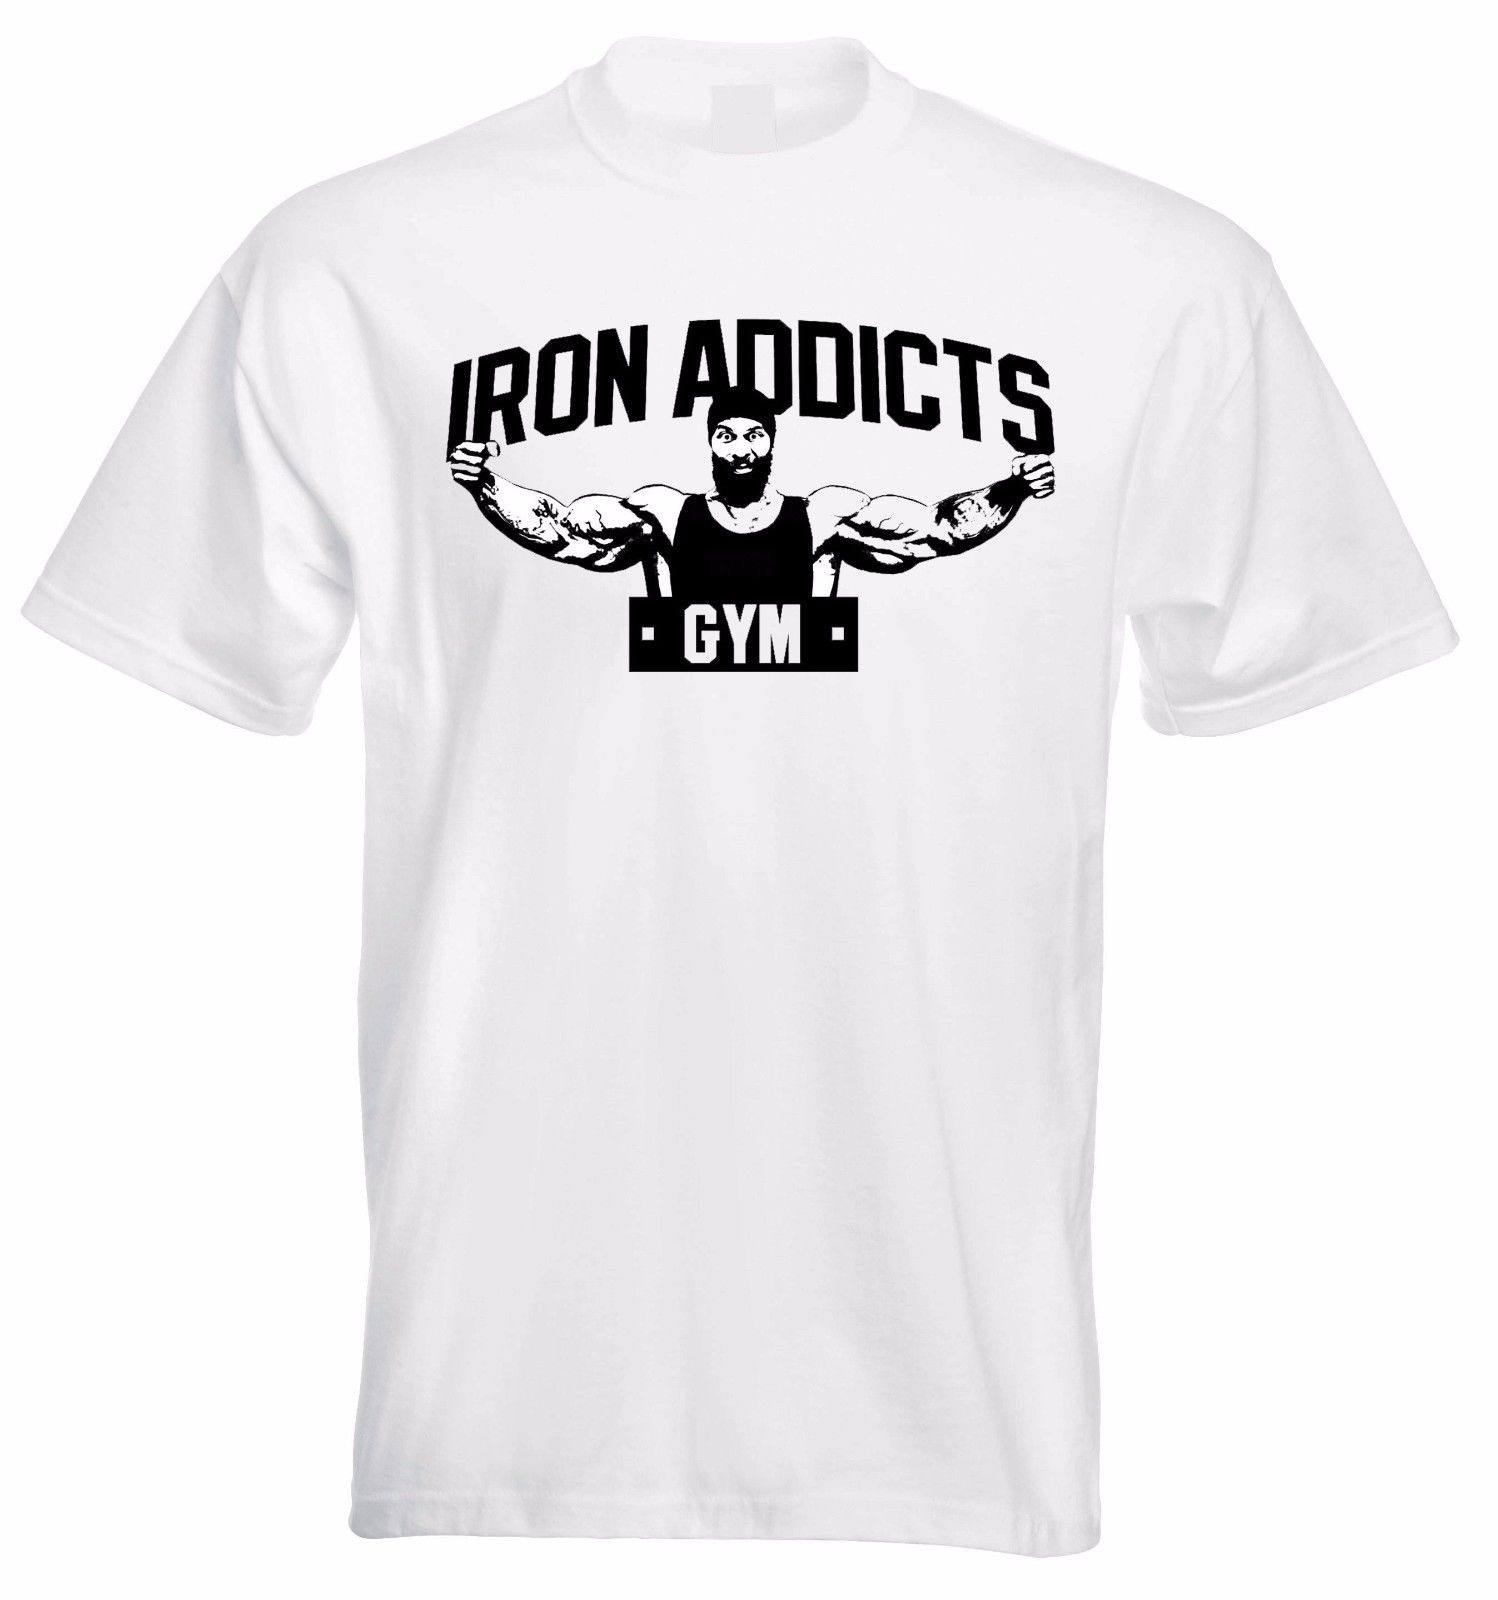 IRON ADDICTS GYMER T SHIRT CT FLETCHER MIKE RASHID - WHITE Summer Short Sleeves New Fashion T-Shirt Casual Printed Tee